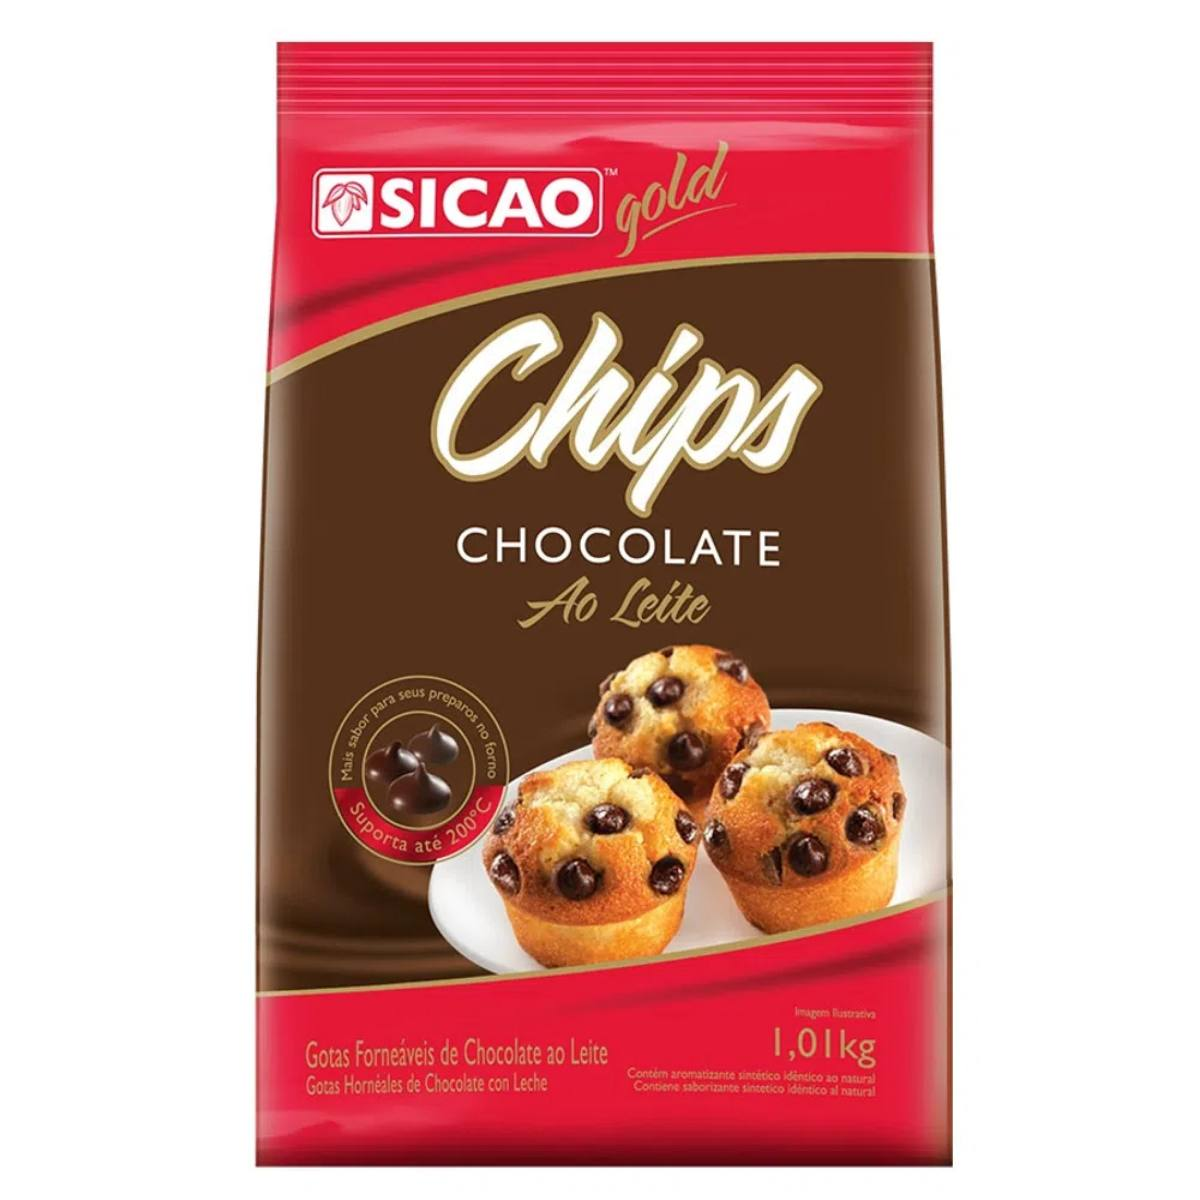 Chips Chocolate ao Leite Sicao Gold 1,01Kg